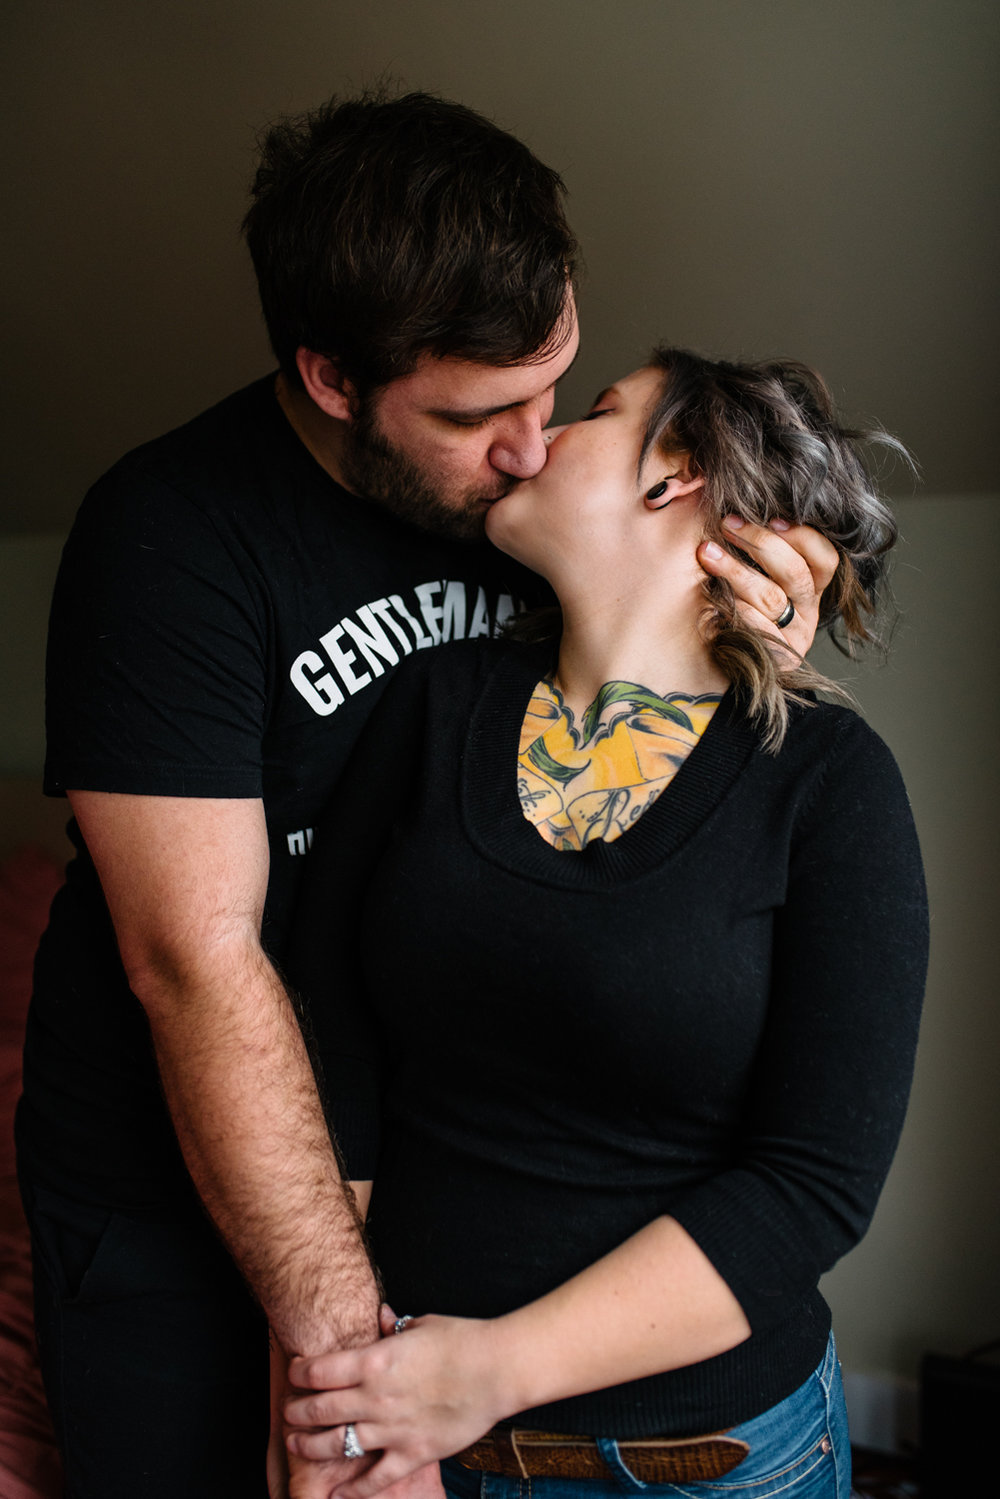 couple-with-tattoos-kissing-copyright-Elisabeth-Waller.jpg